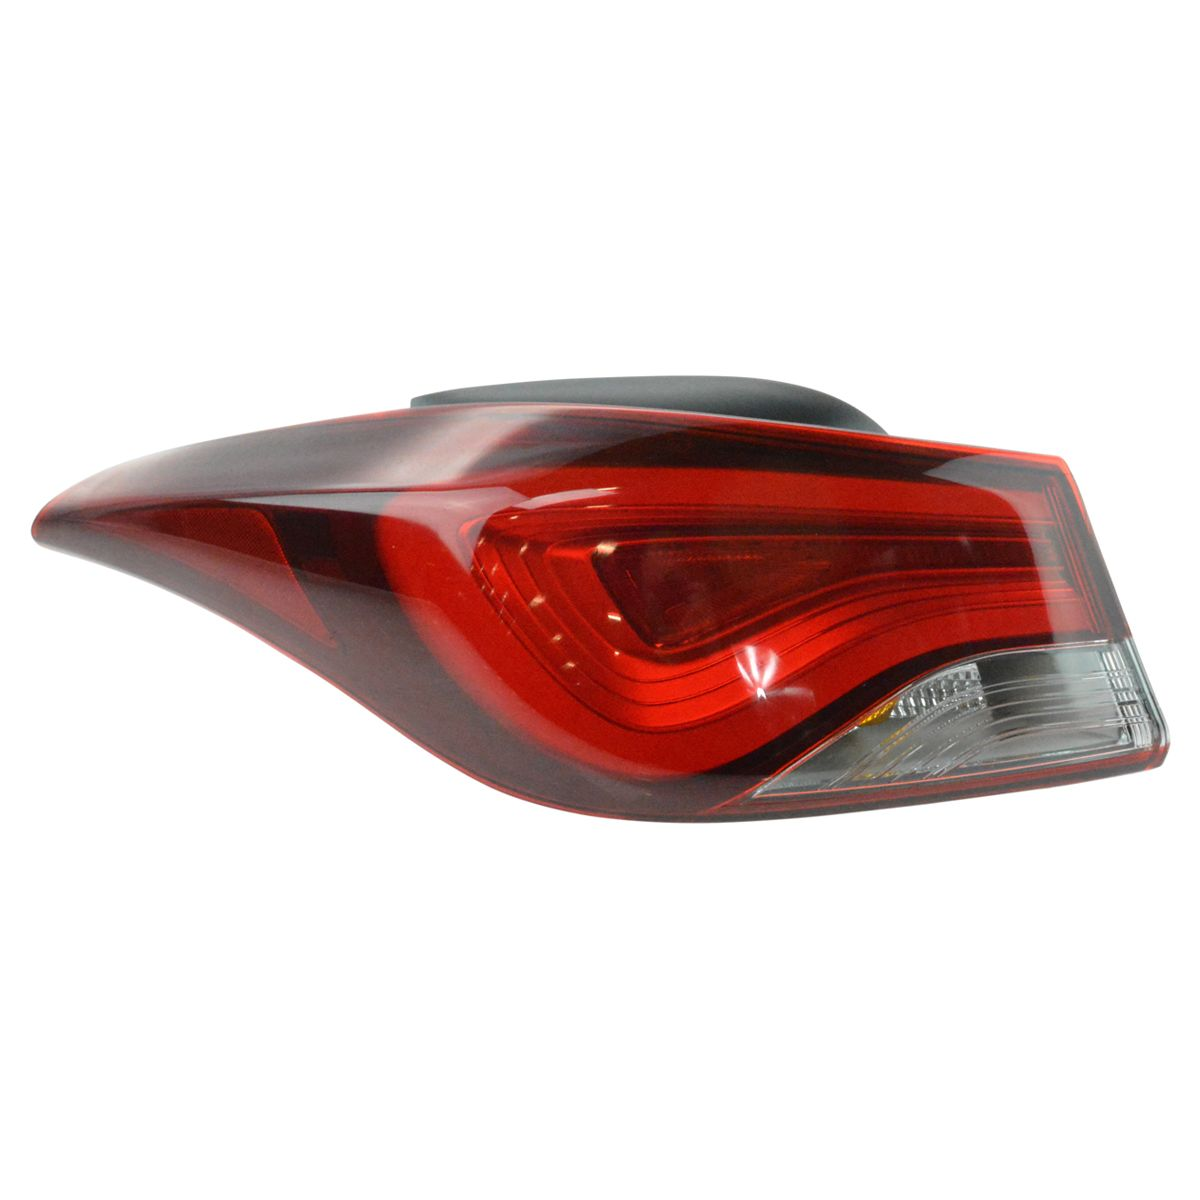 LED Tail Light Taillight Outer Quarter Panel Mounted Driver Side LH for Elantra